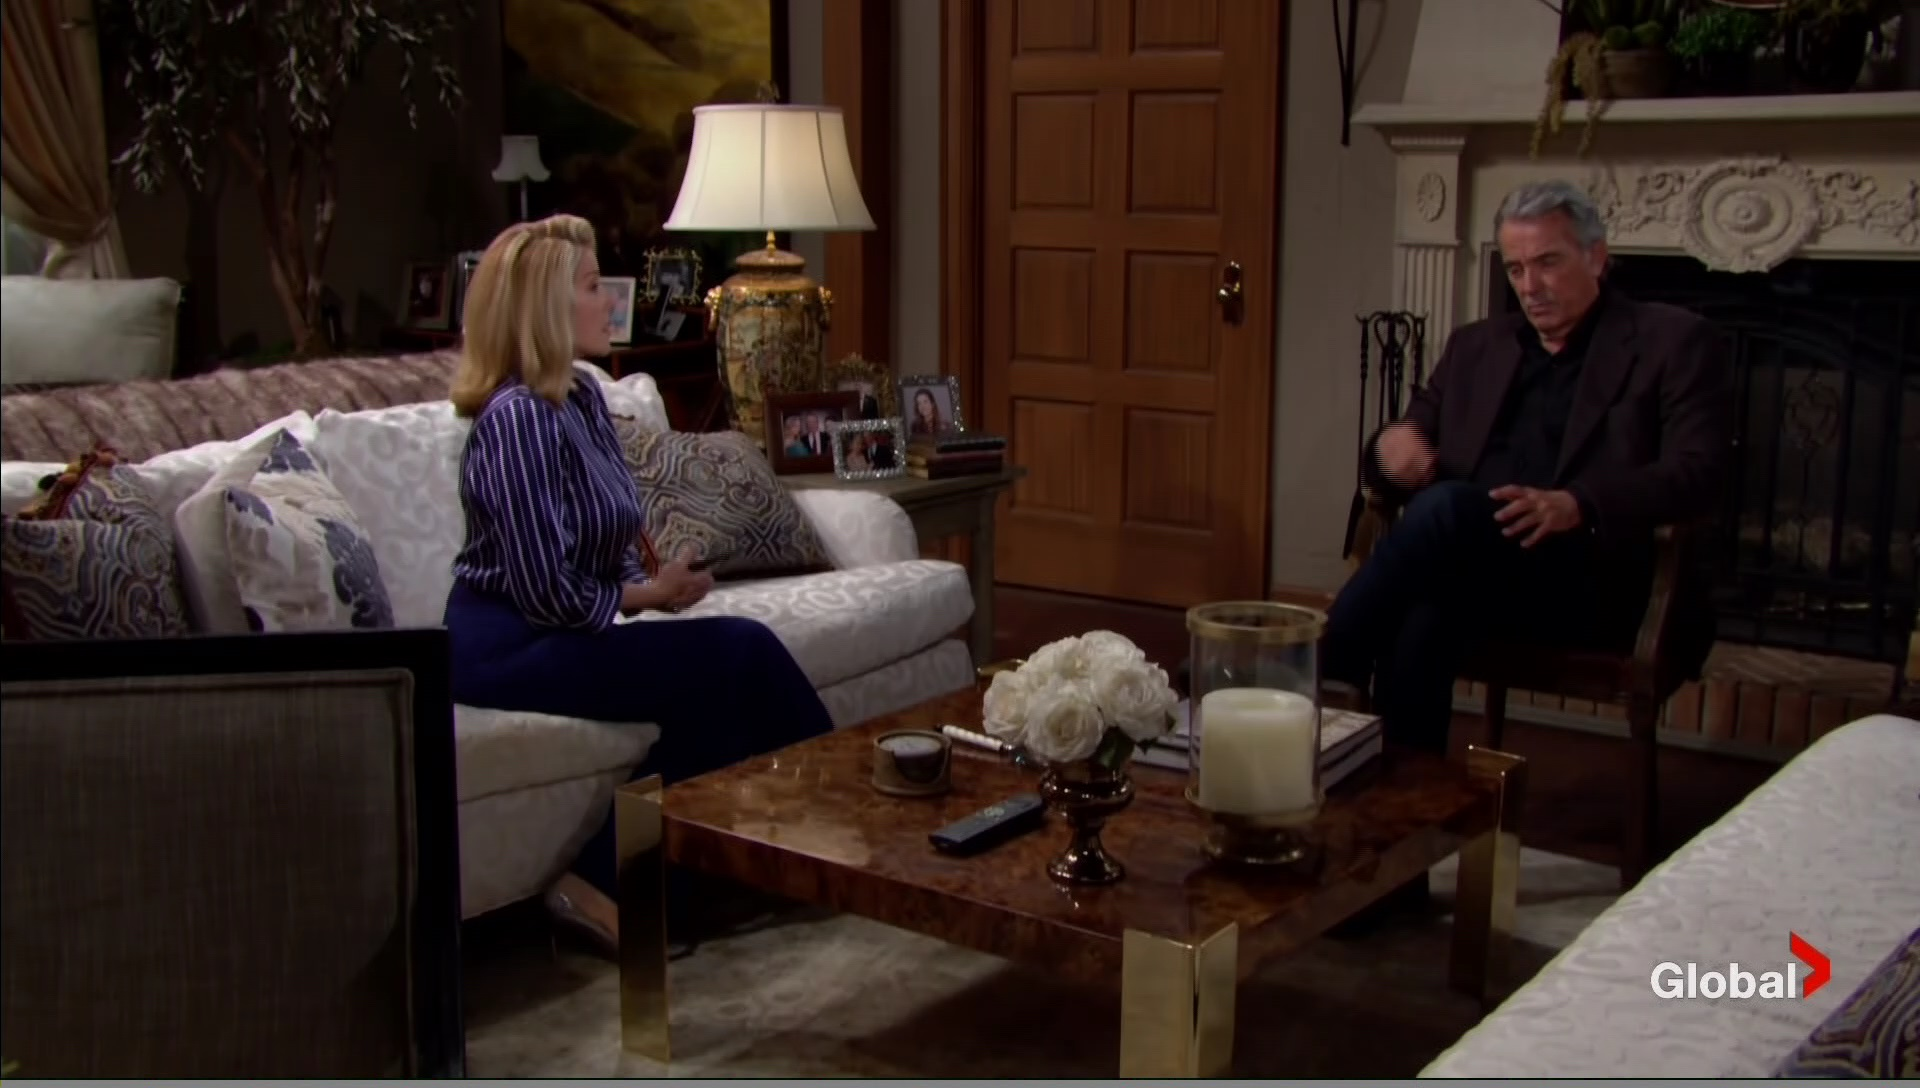 victor upset ash moving in young restless